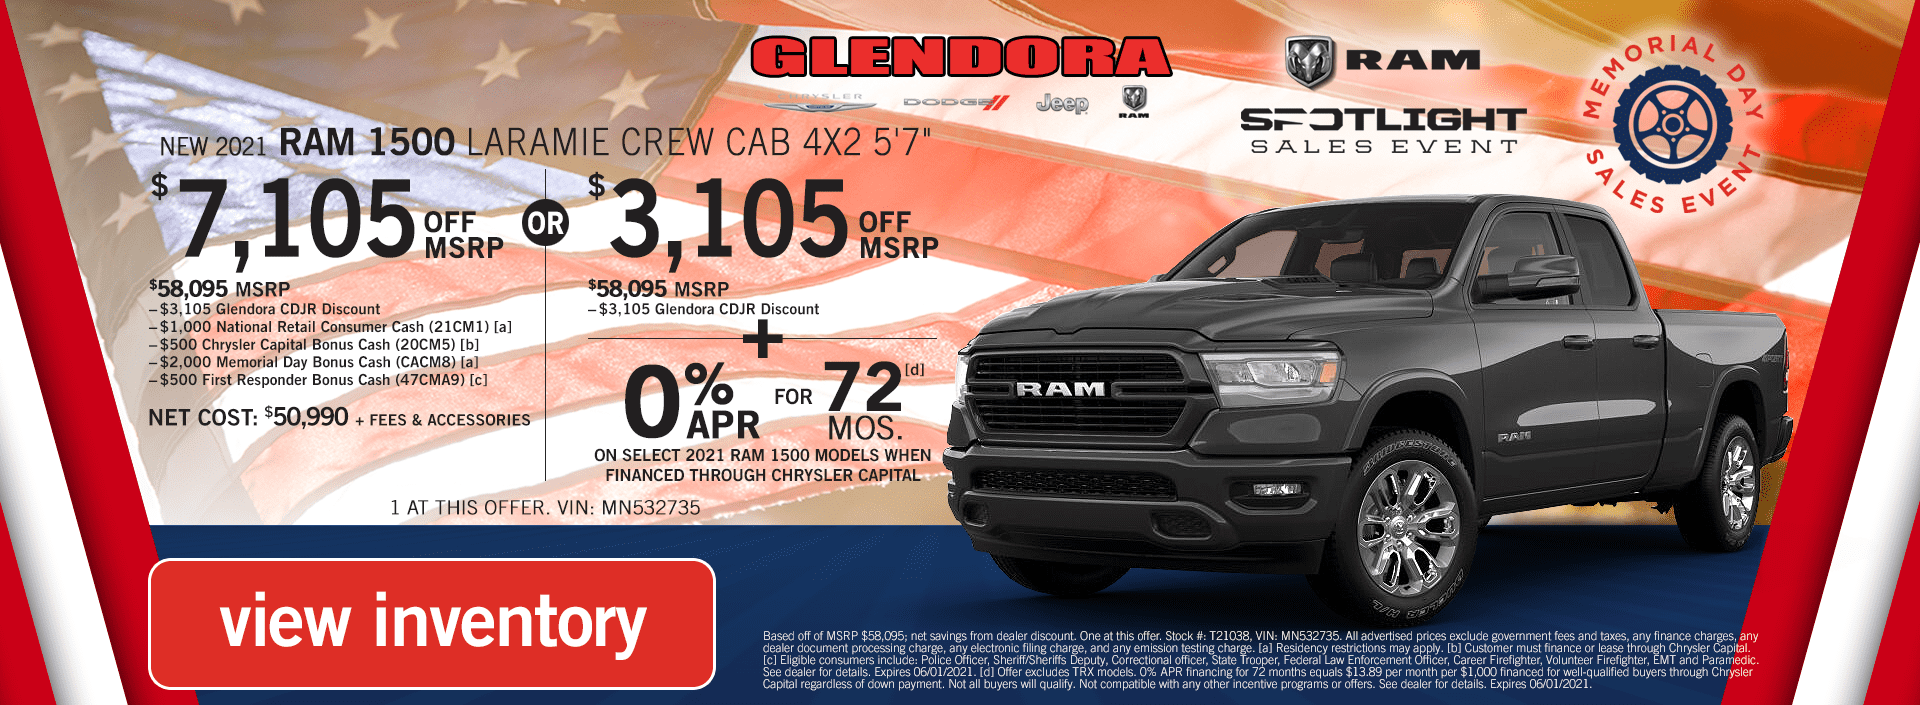 Ram 1500 Deals Memorial Day Sales Event